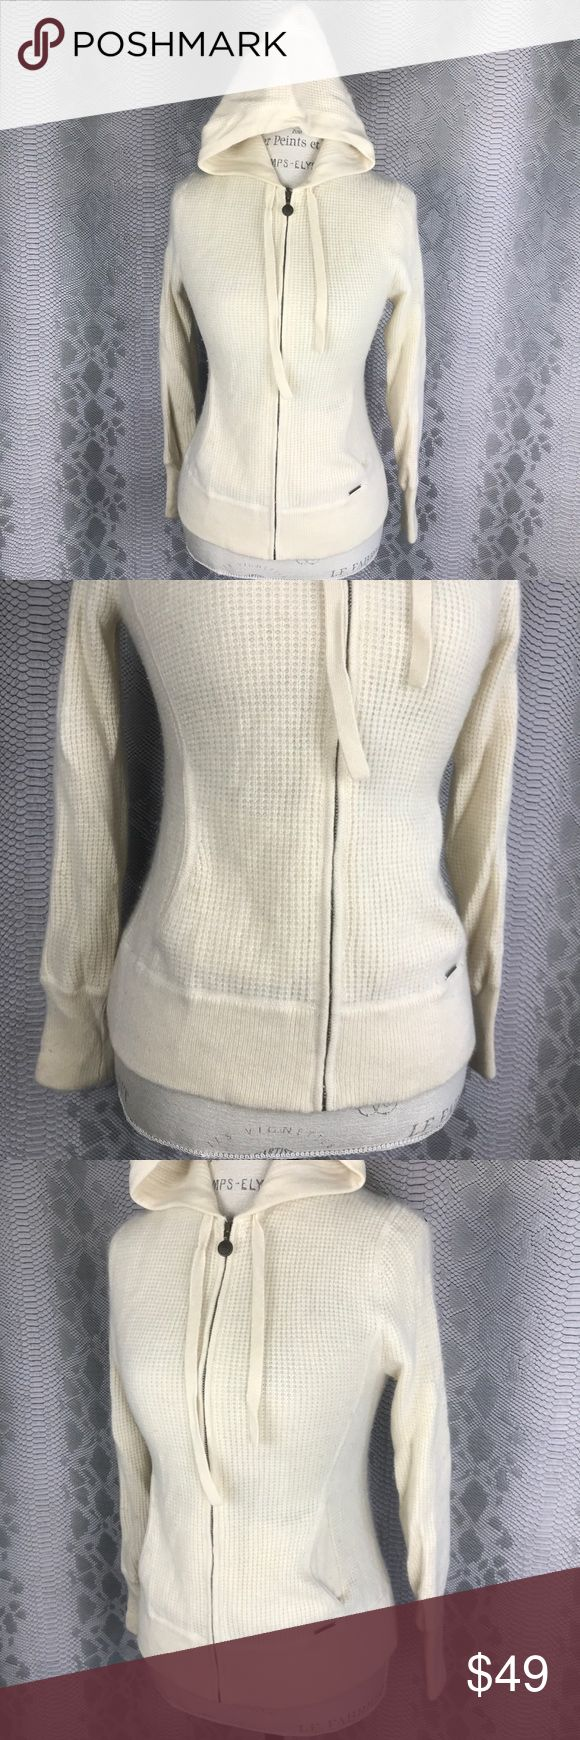 Ugg cream zip up hooded sweater w Pockets Good condition . Fuzzy furry zip up hooded sweatshirt  Two outside pockets Adjustable hoodie Full zip with ugg branded zipper UGG Jackets & Coats